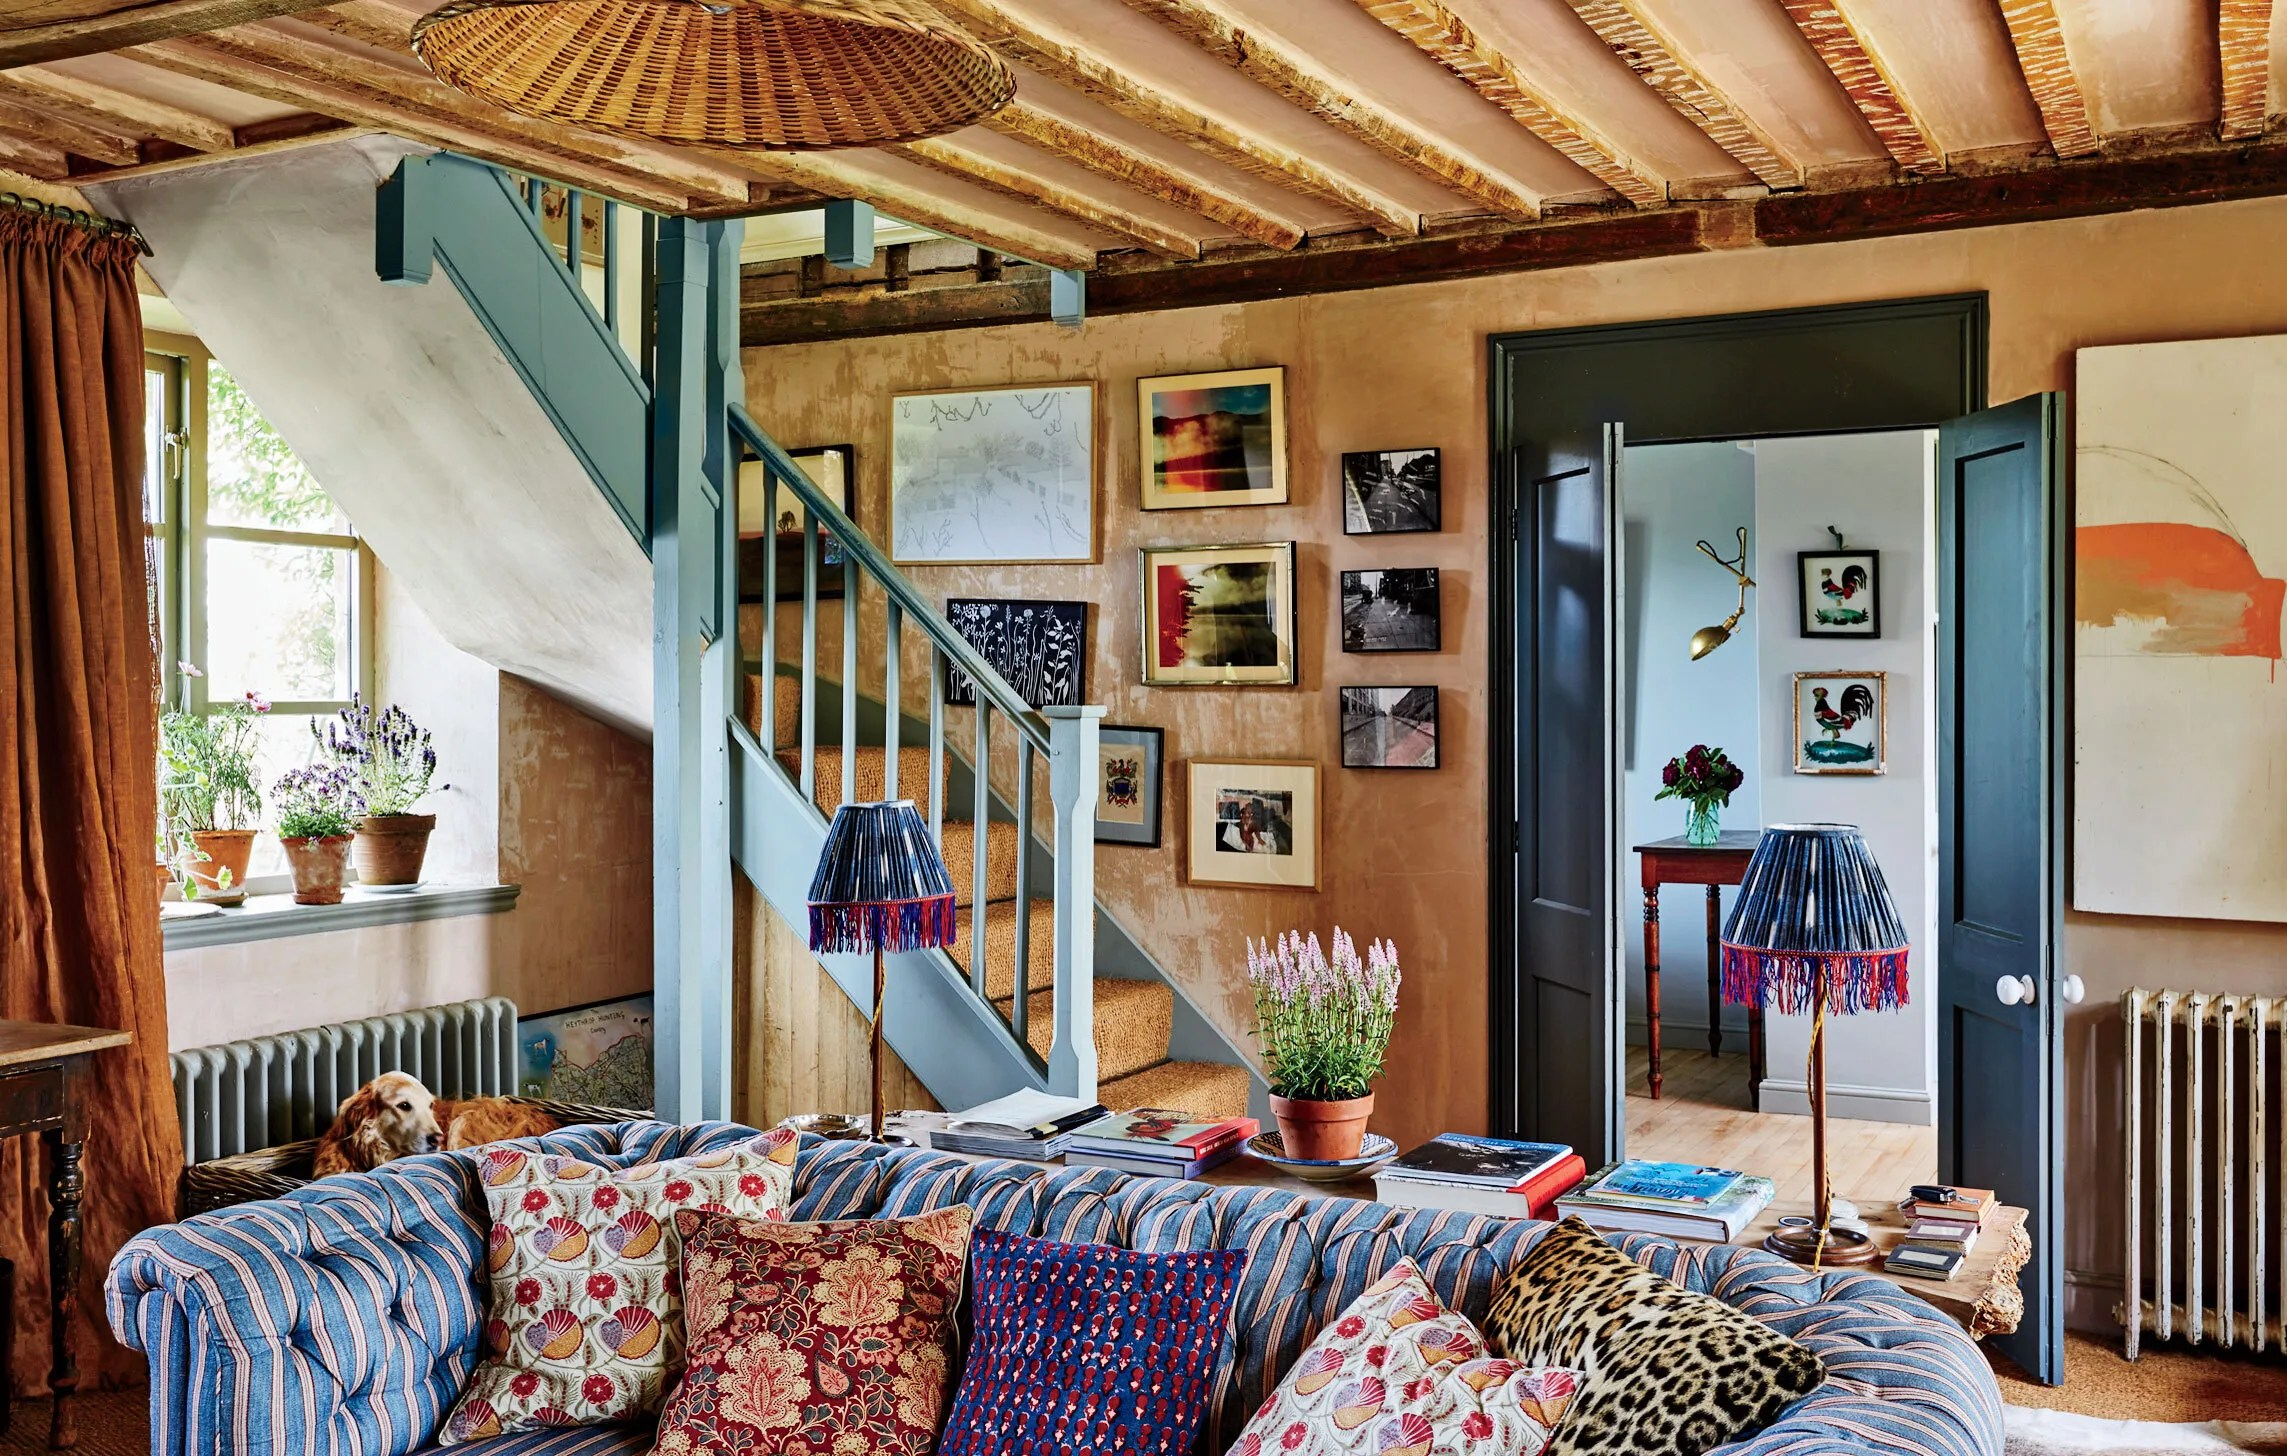 We wish we could say that we were sad to se. Design Trends What Covid 19 Will Mean For Interiors In 2021 Architectural Digest